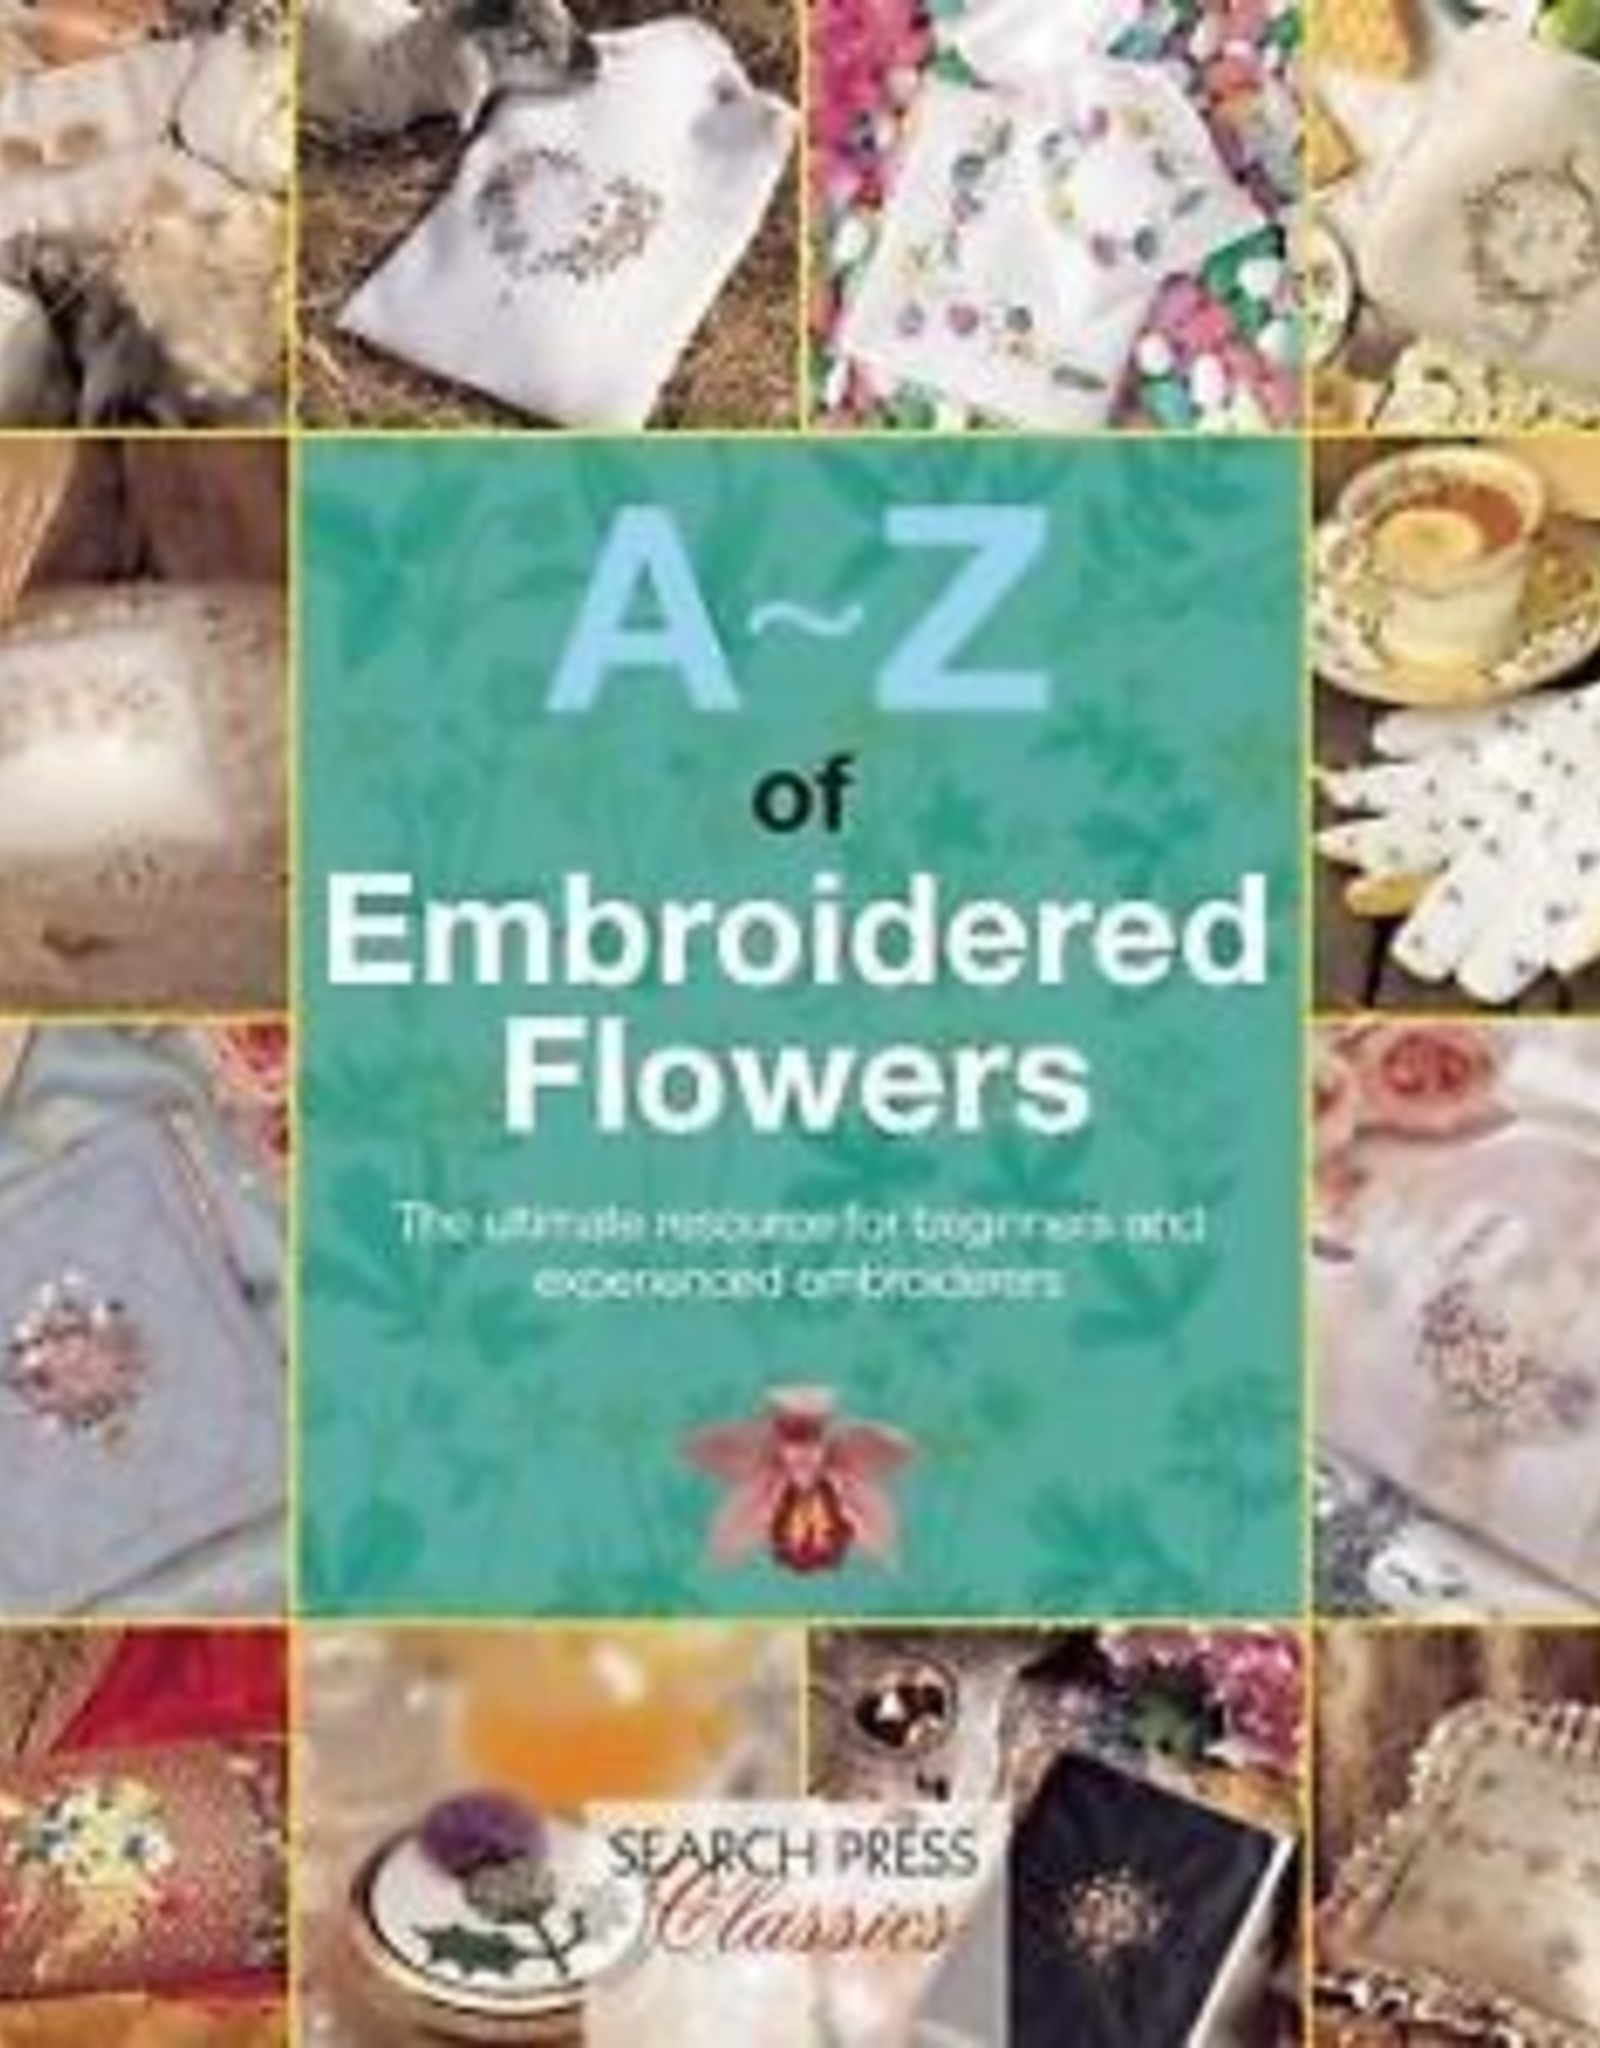 A-Z of Embroidered Flowers by Sue Gardner